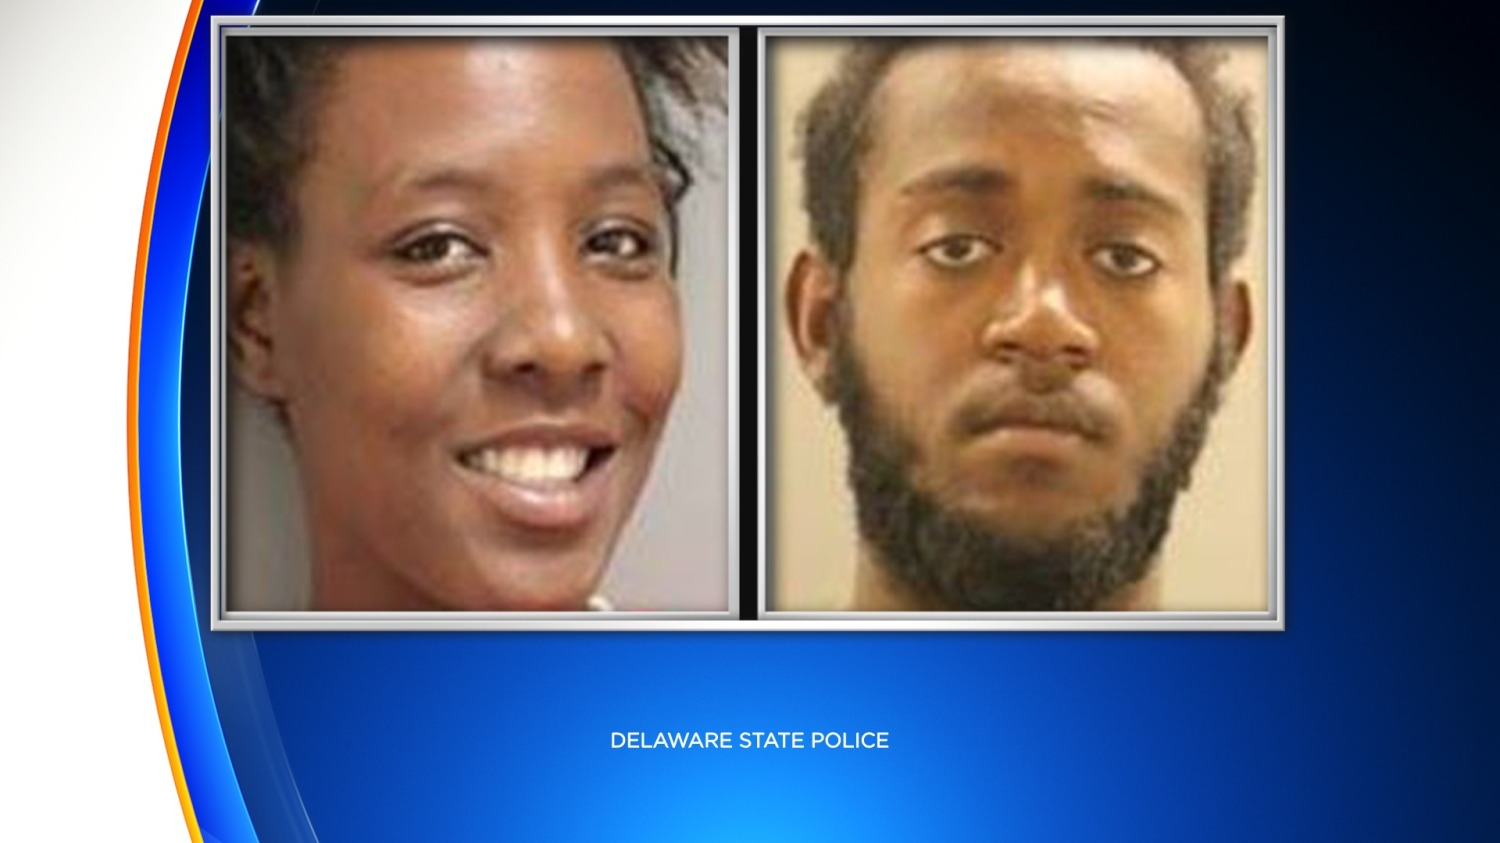 Delaware State Police Identify 2 Suspects Wanted In Assault Inside New Castle Liquor Store